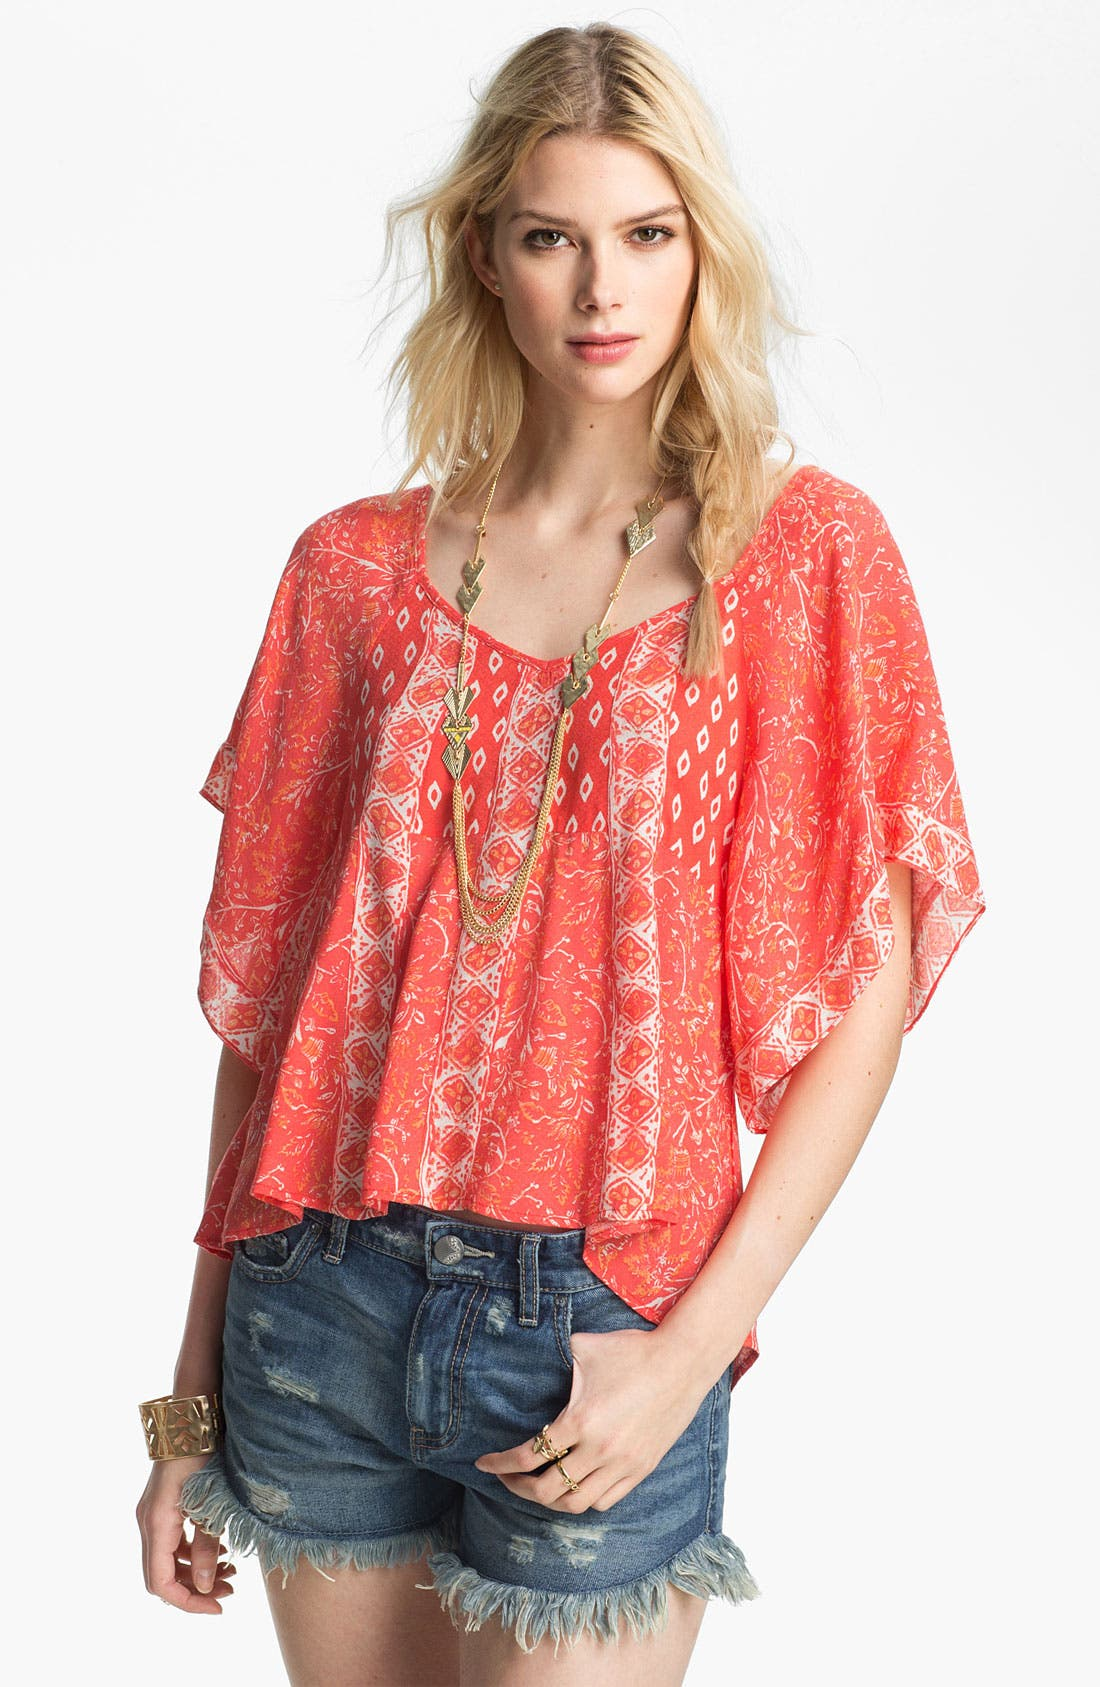 Alternate Image 1 Selected - Free People 'Mix It Up' Print Butterfly Top